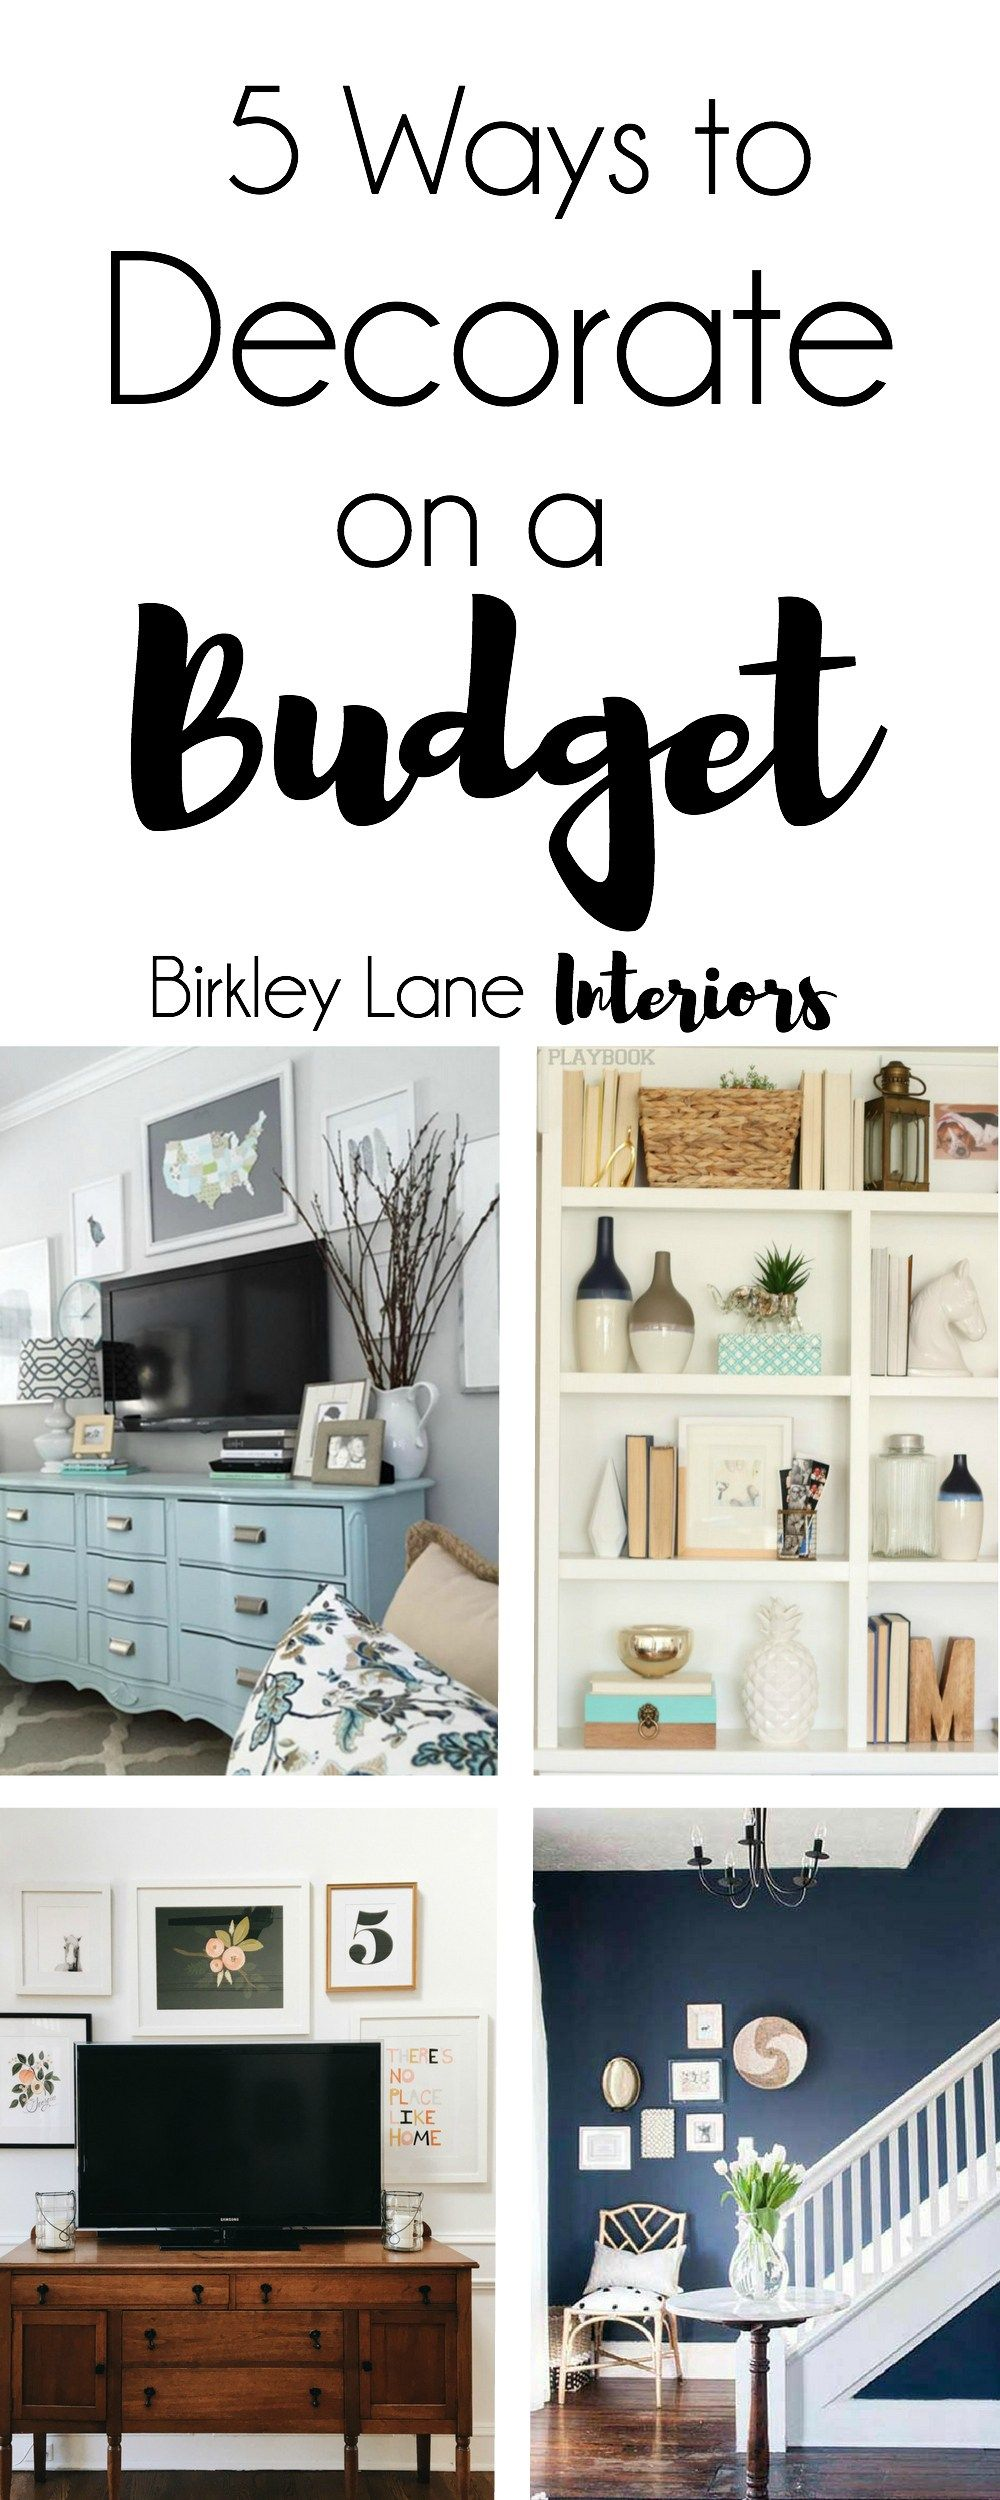 5 Ways To Decorate On A Budget